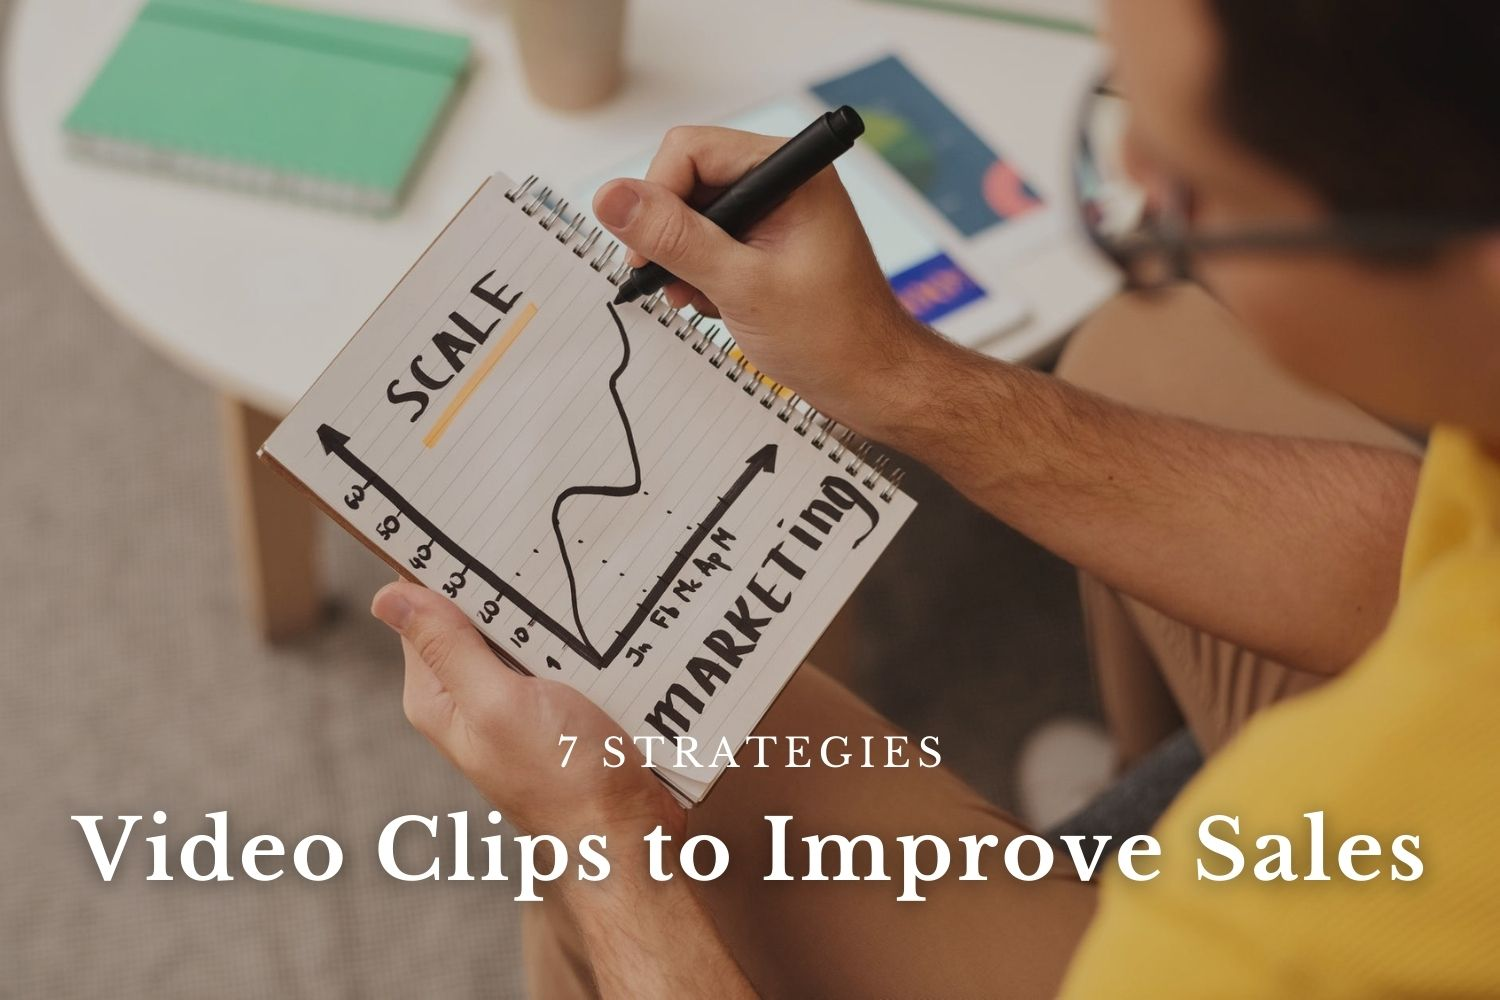 7 Strategies for Using Video Clips to Improve Sales